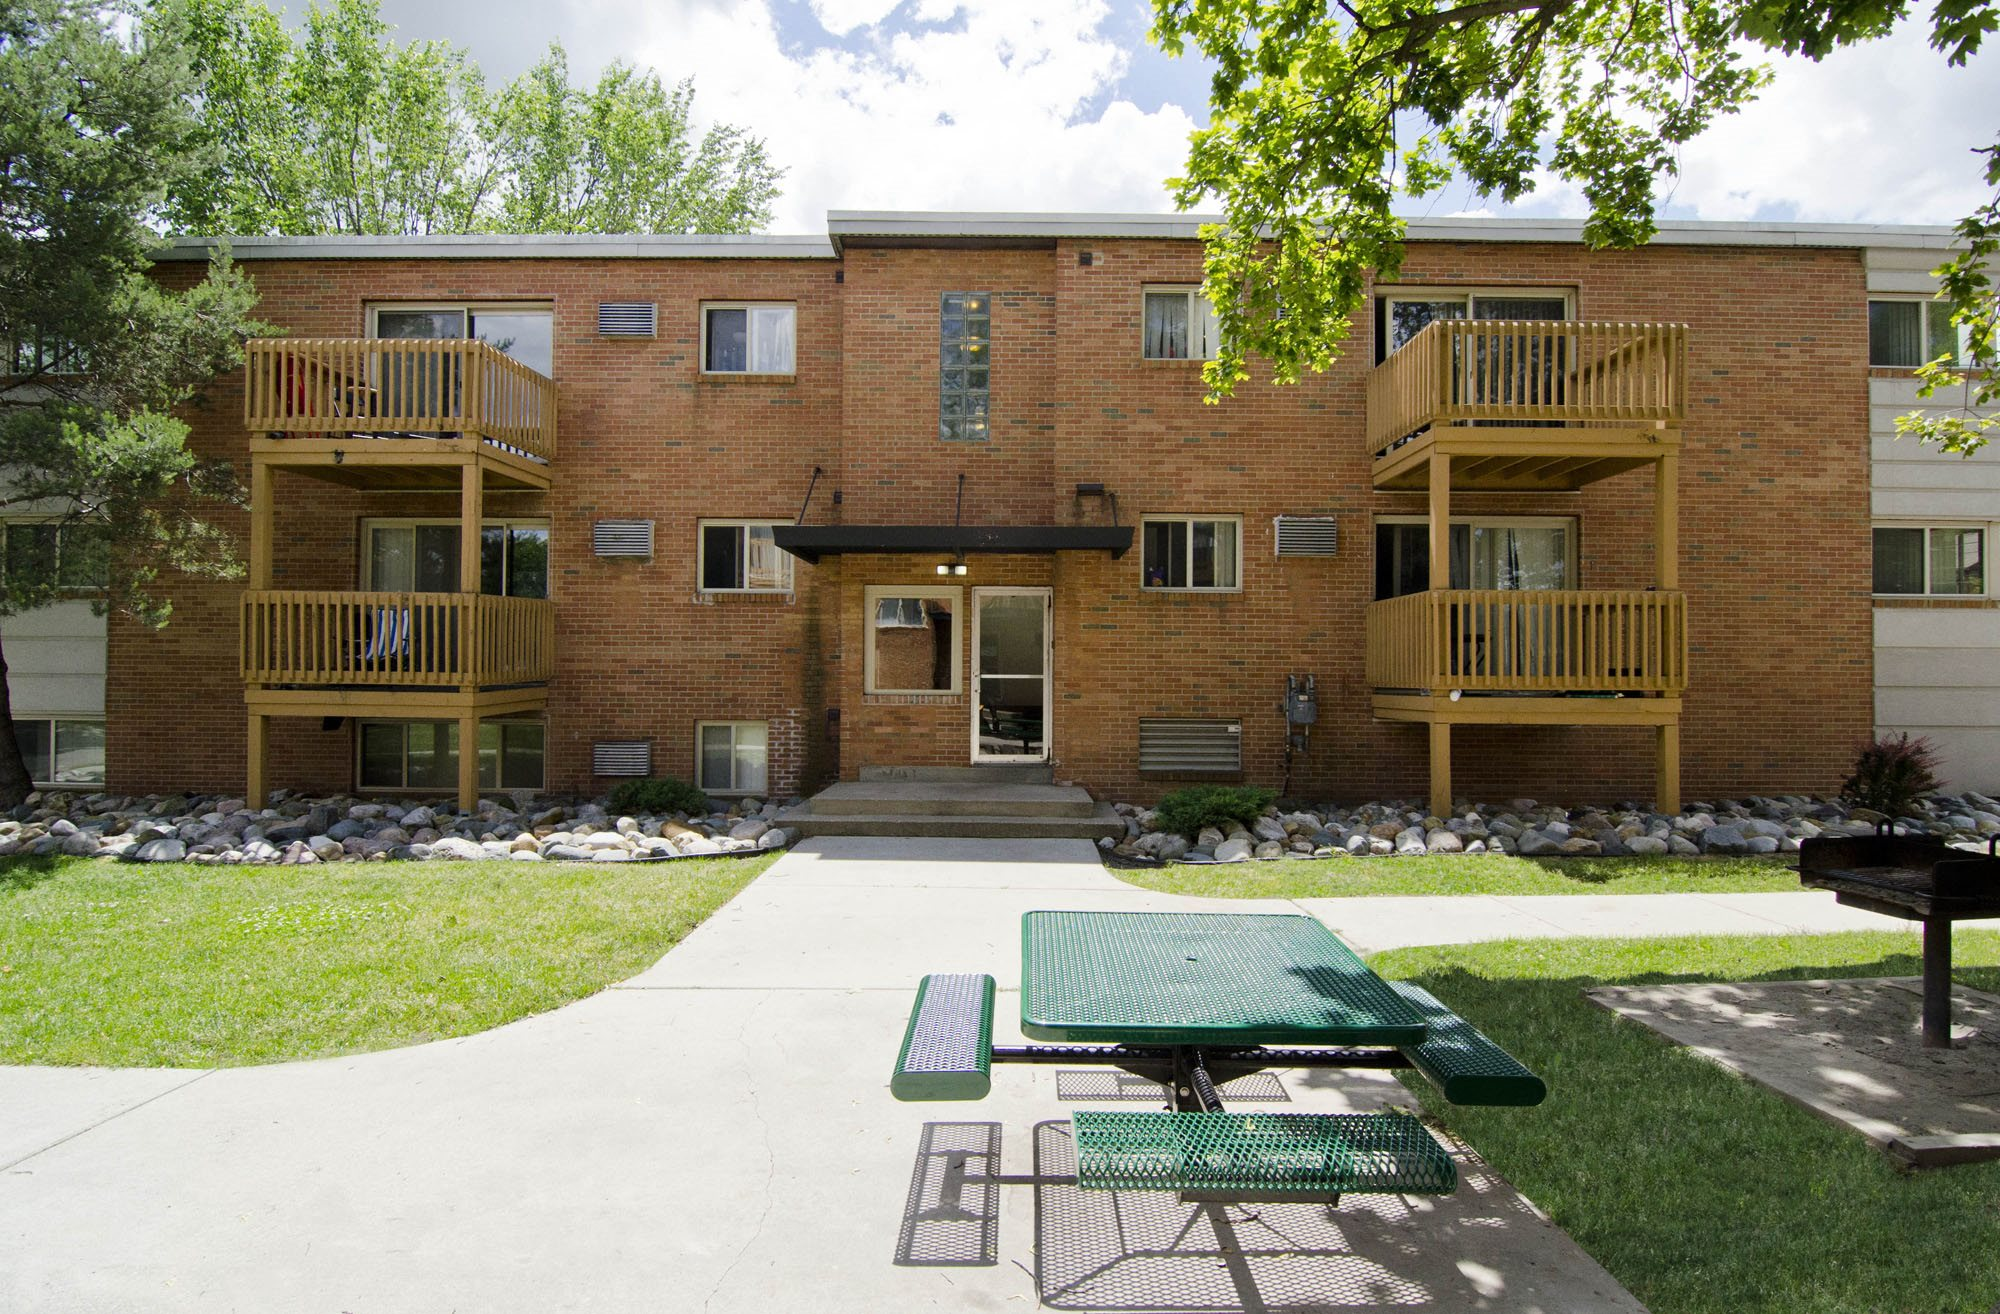 Photos and Video of Cedar Street Apartments in East ...